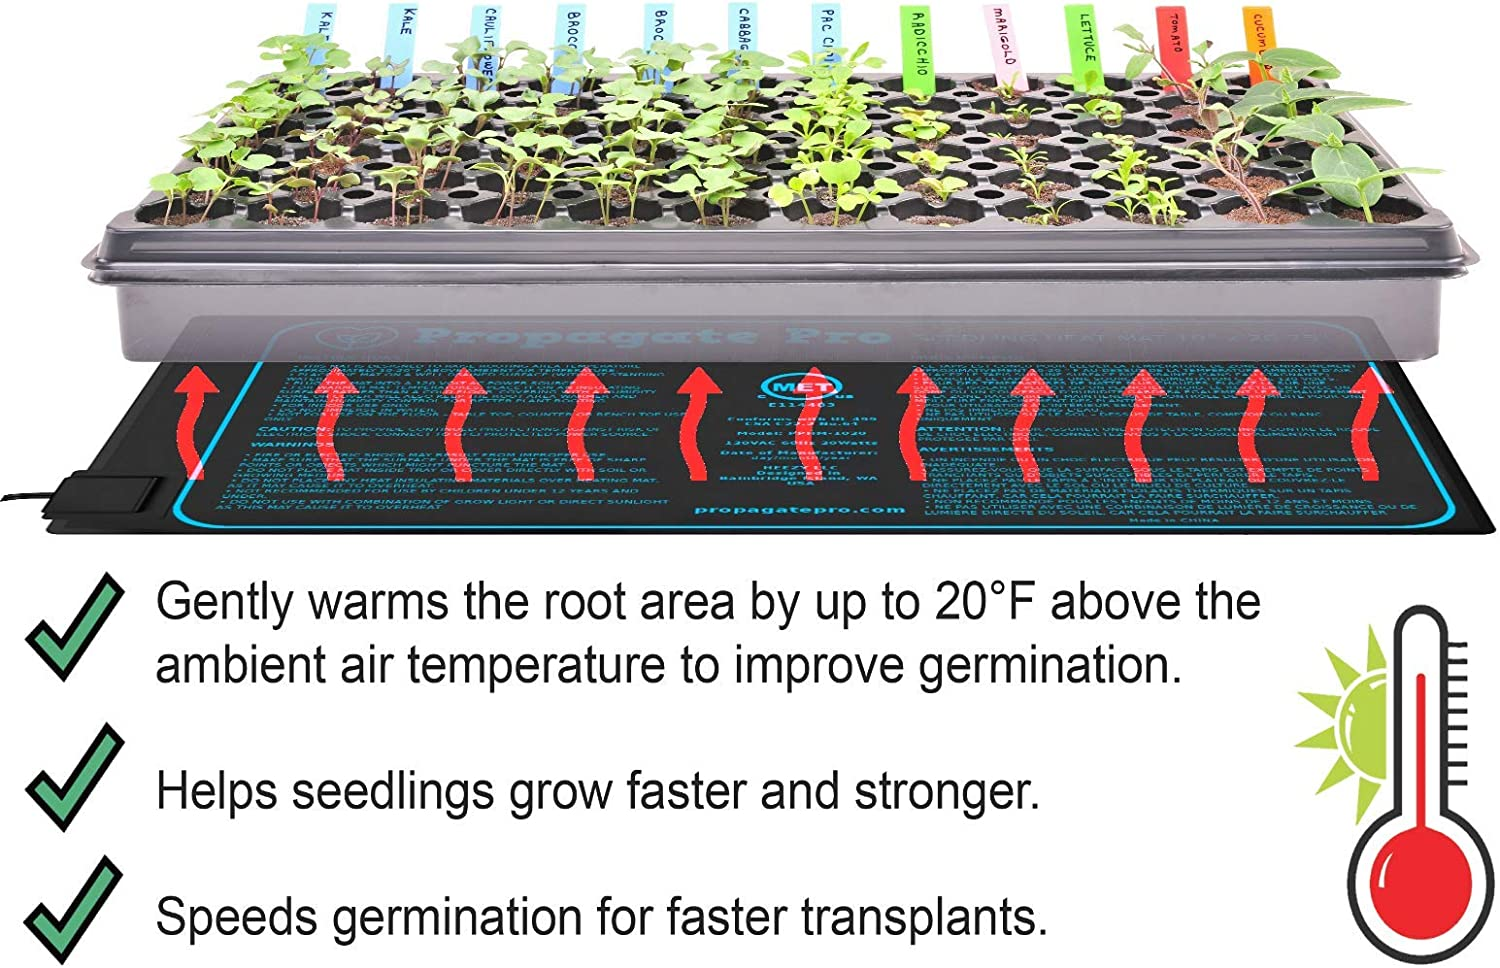 Propagate Pro Seedling Heating Mat Fits 1 Standard 1020 Tray Germination Grow Heat Pad for Seed Starter Plants Soil Warmer for Indoor Home Gardening 10×20 Single Heating Thermostat